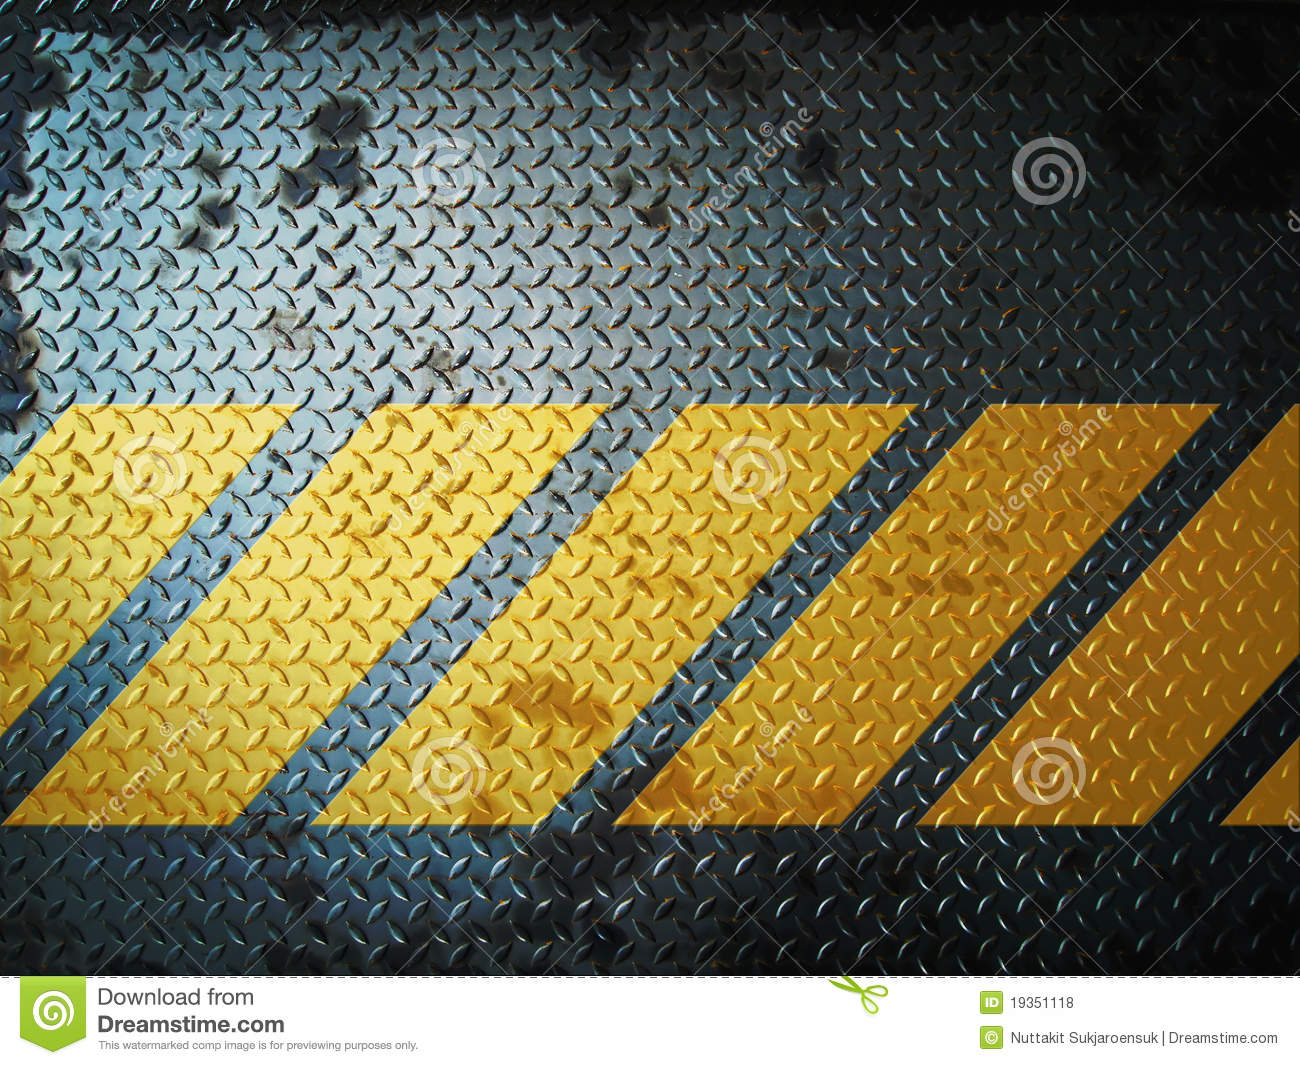 Black Diamond Plate Wallpaper Dark Gray Grunge Steel Floor Plate Yellow Line Stock